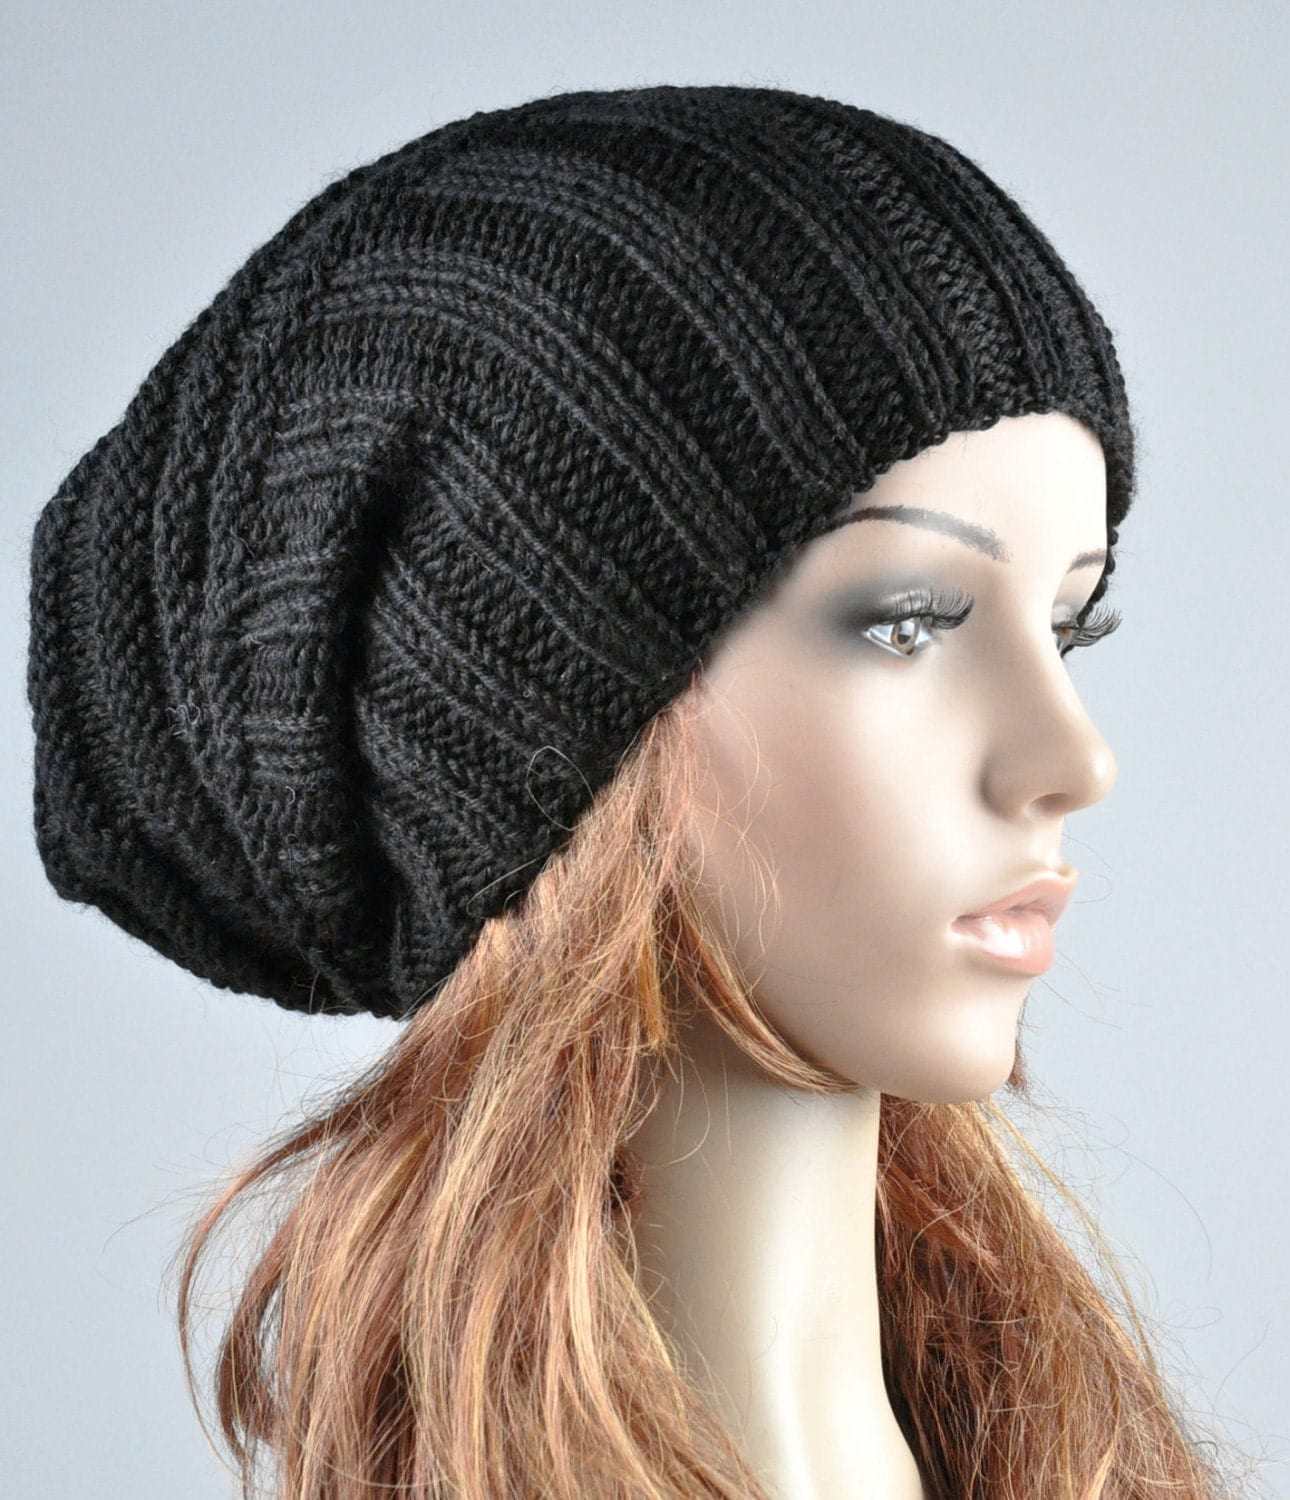 Winter Hats for Women,Berets for Women,Knit Beret Hats Zebra Print Lightweight Soft Wool Berets for Women $ 17 08 Prime. 5 out of 5 stars 3. Women Girl Triangle Slouchy Knit Beret Beanie Hat Cap Black $ 3 out of 5 stars Accessory Necessary. Womens Fall Winter Ribbed Knit Beret Double Layers With Flower. from $ 8 99 Prime.